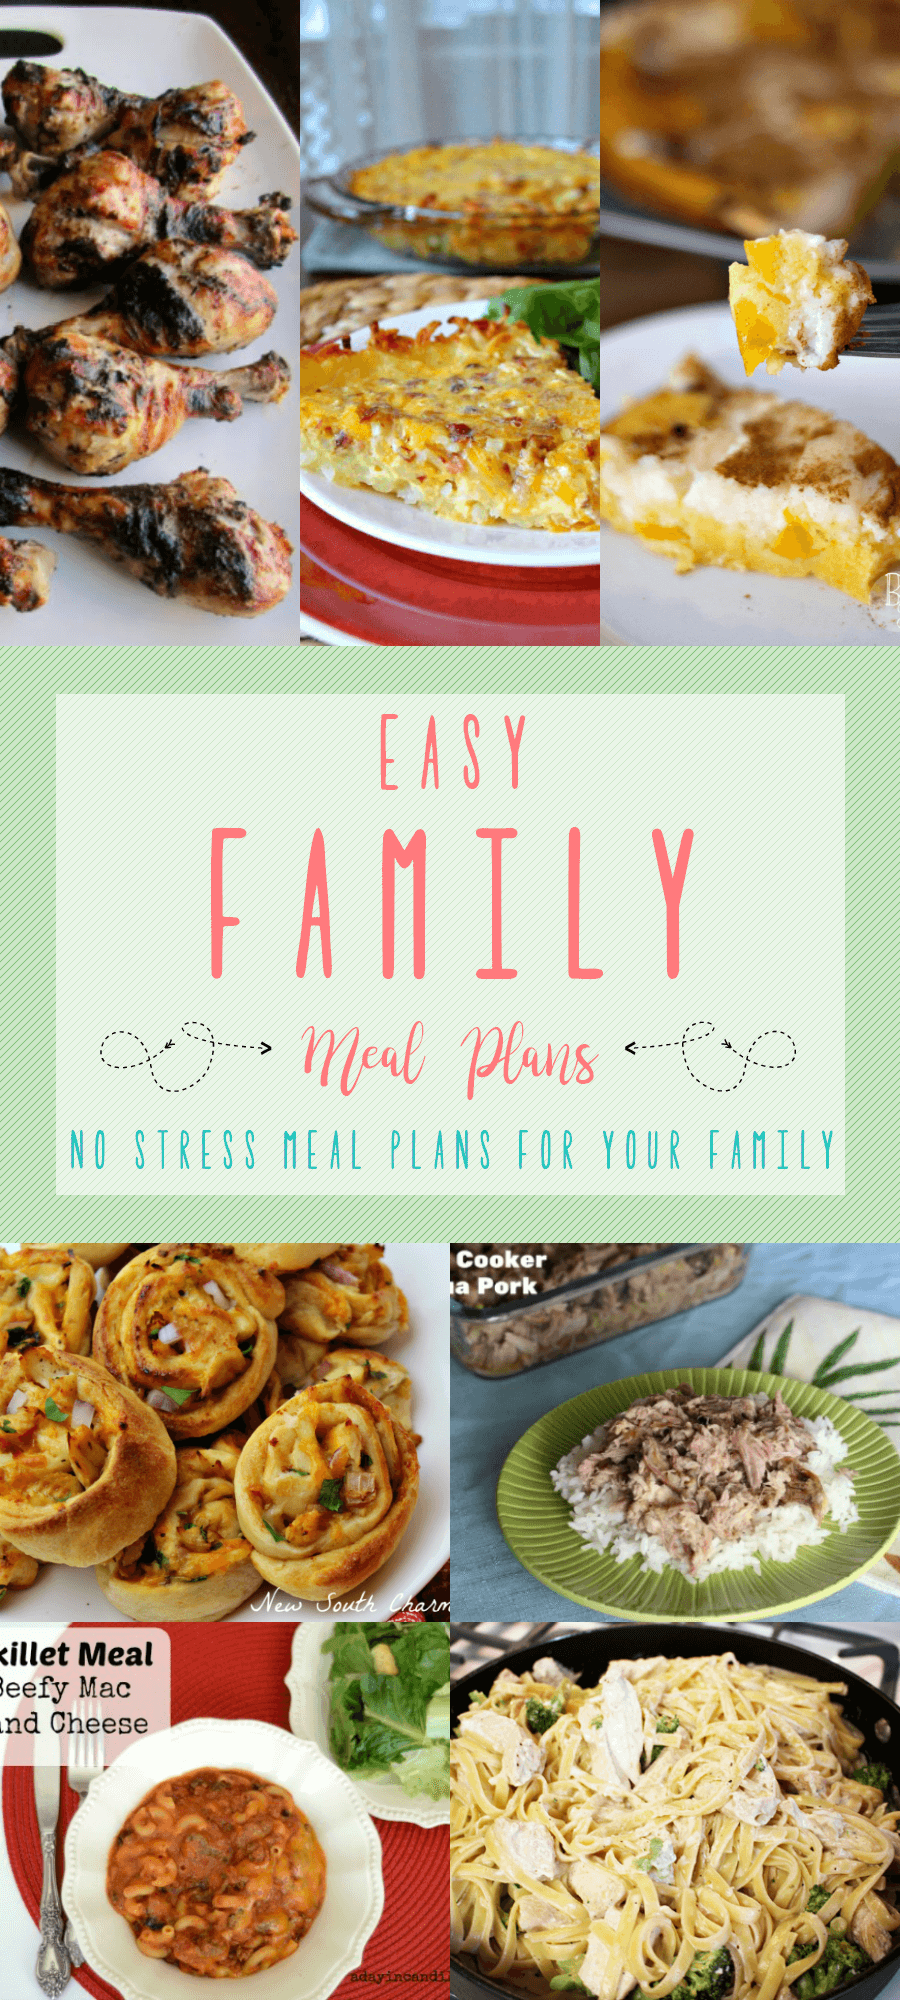 Easy Family Meal Plans